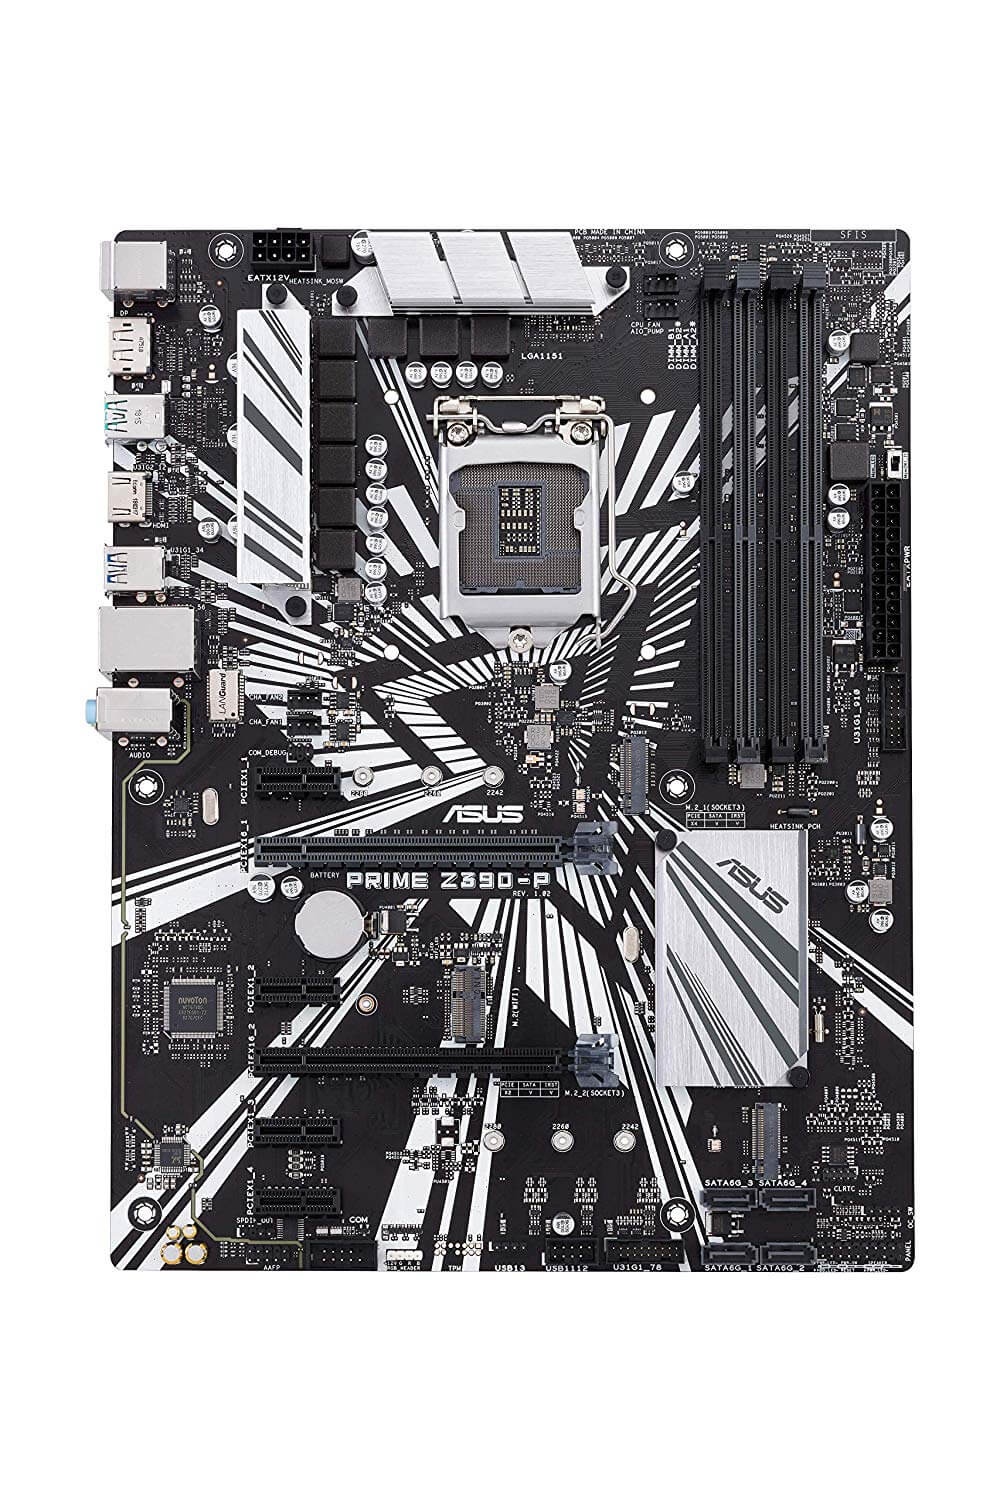 ASUS Prime Z390-P, Onboard Video HDMI, X-Fire, GB LAN,  USB 3.1 Gen 2